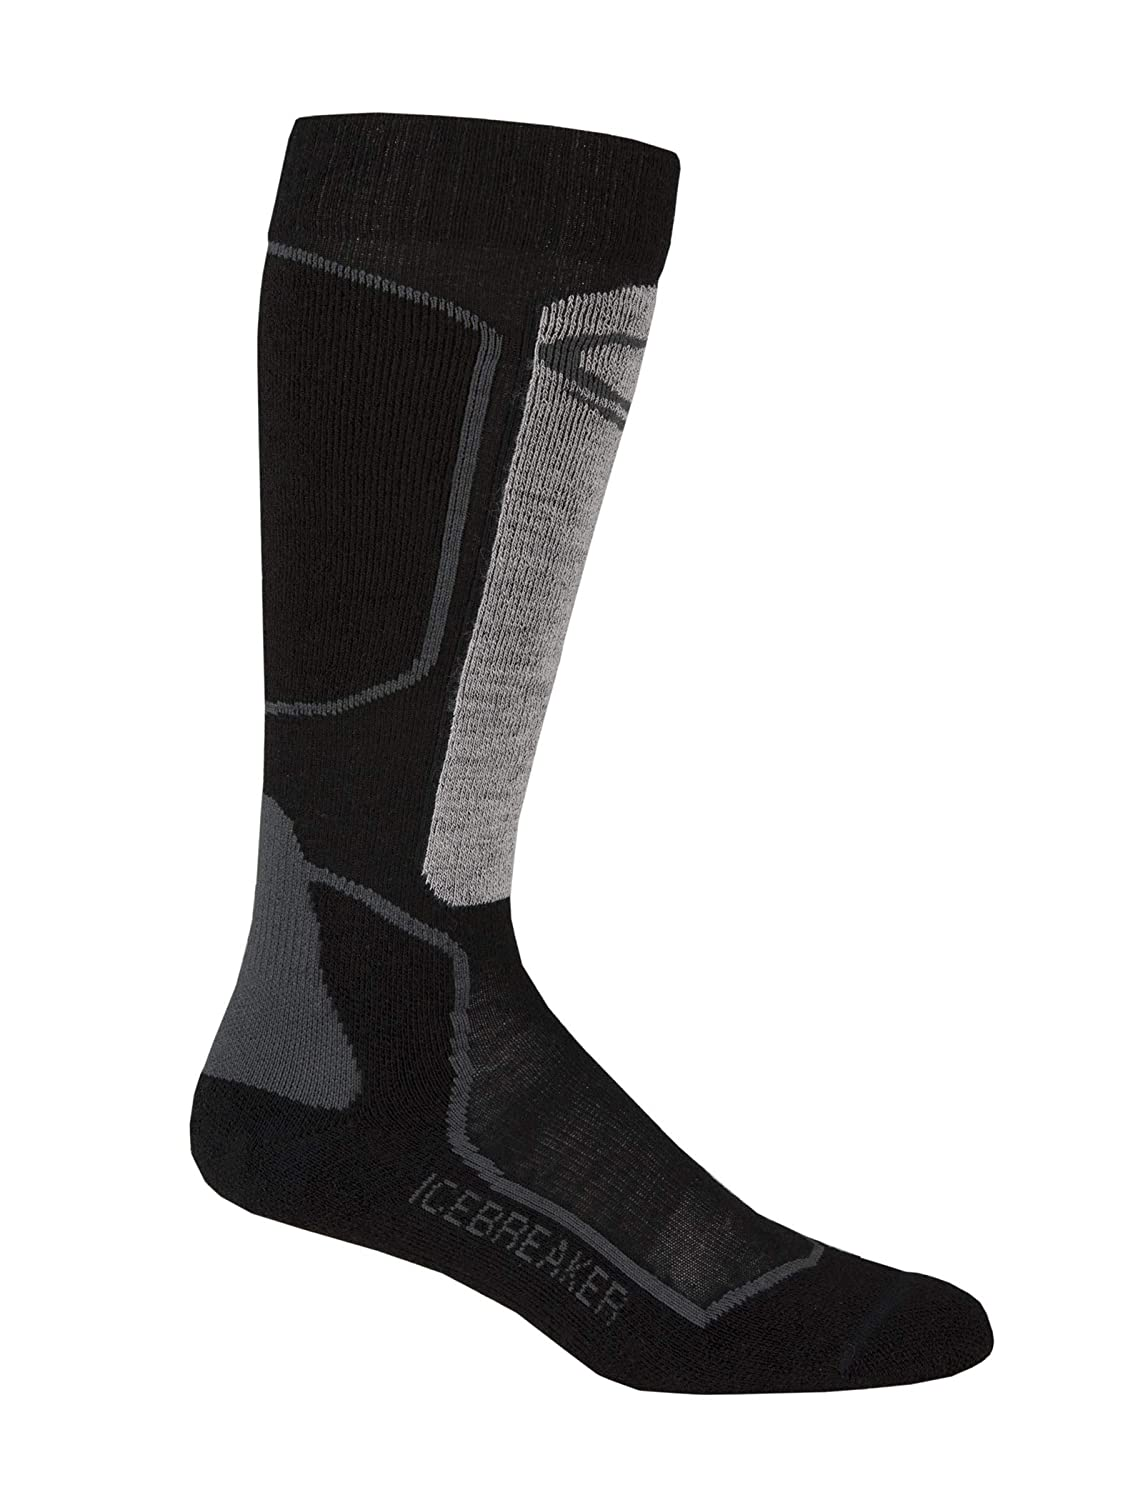 Icebreaker Damen Socken Strümpfe Ski Light OTC